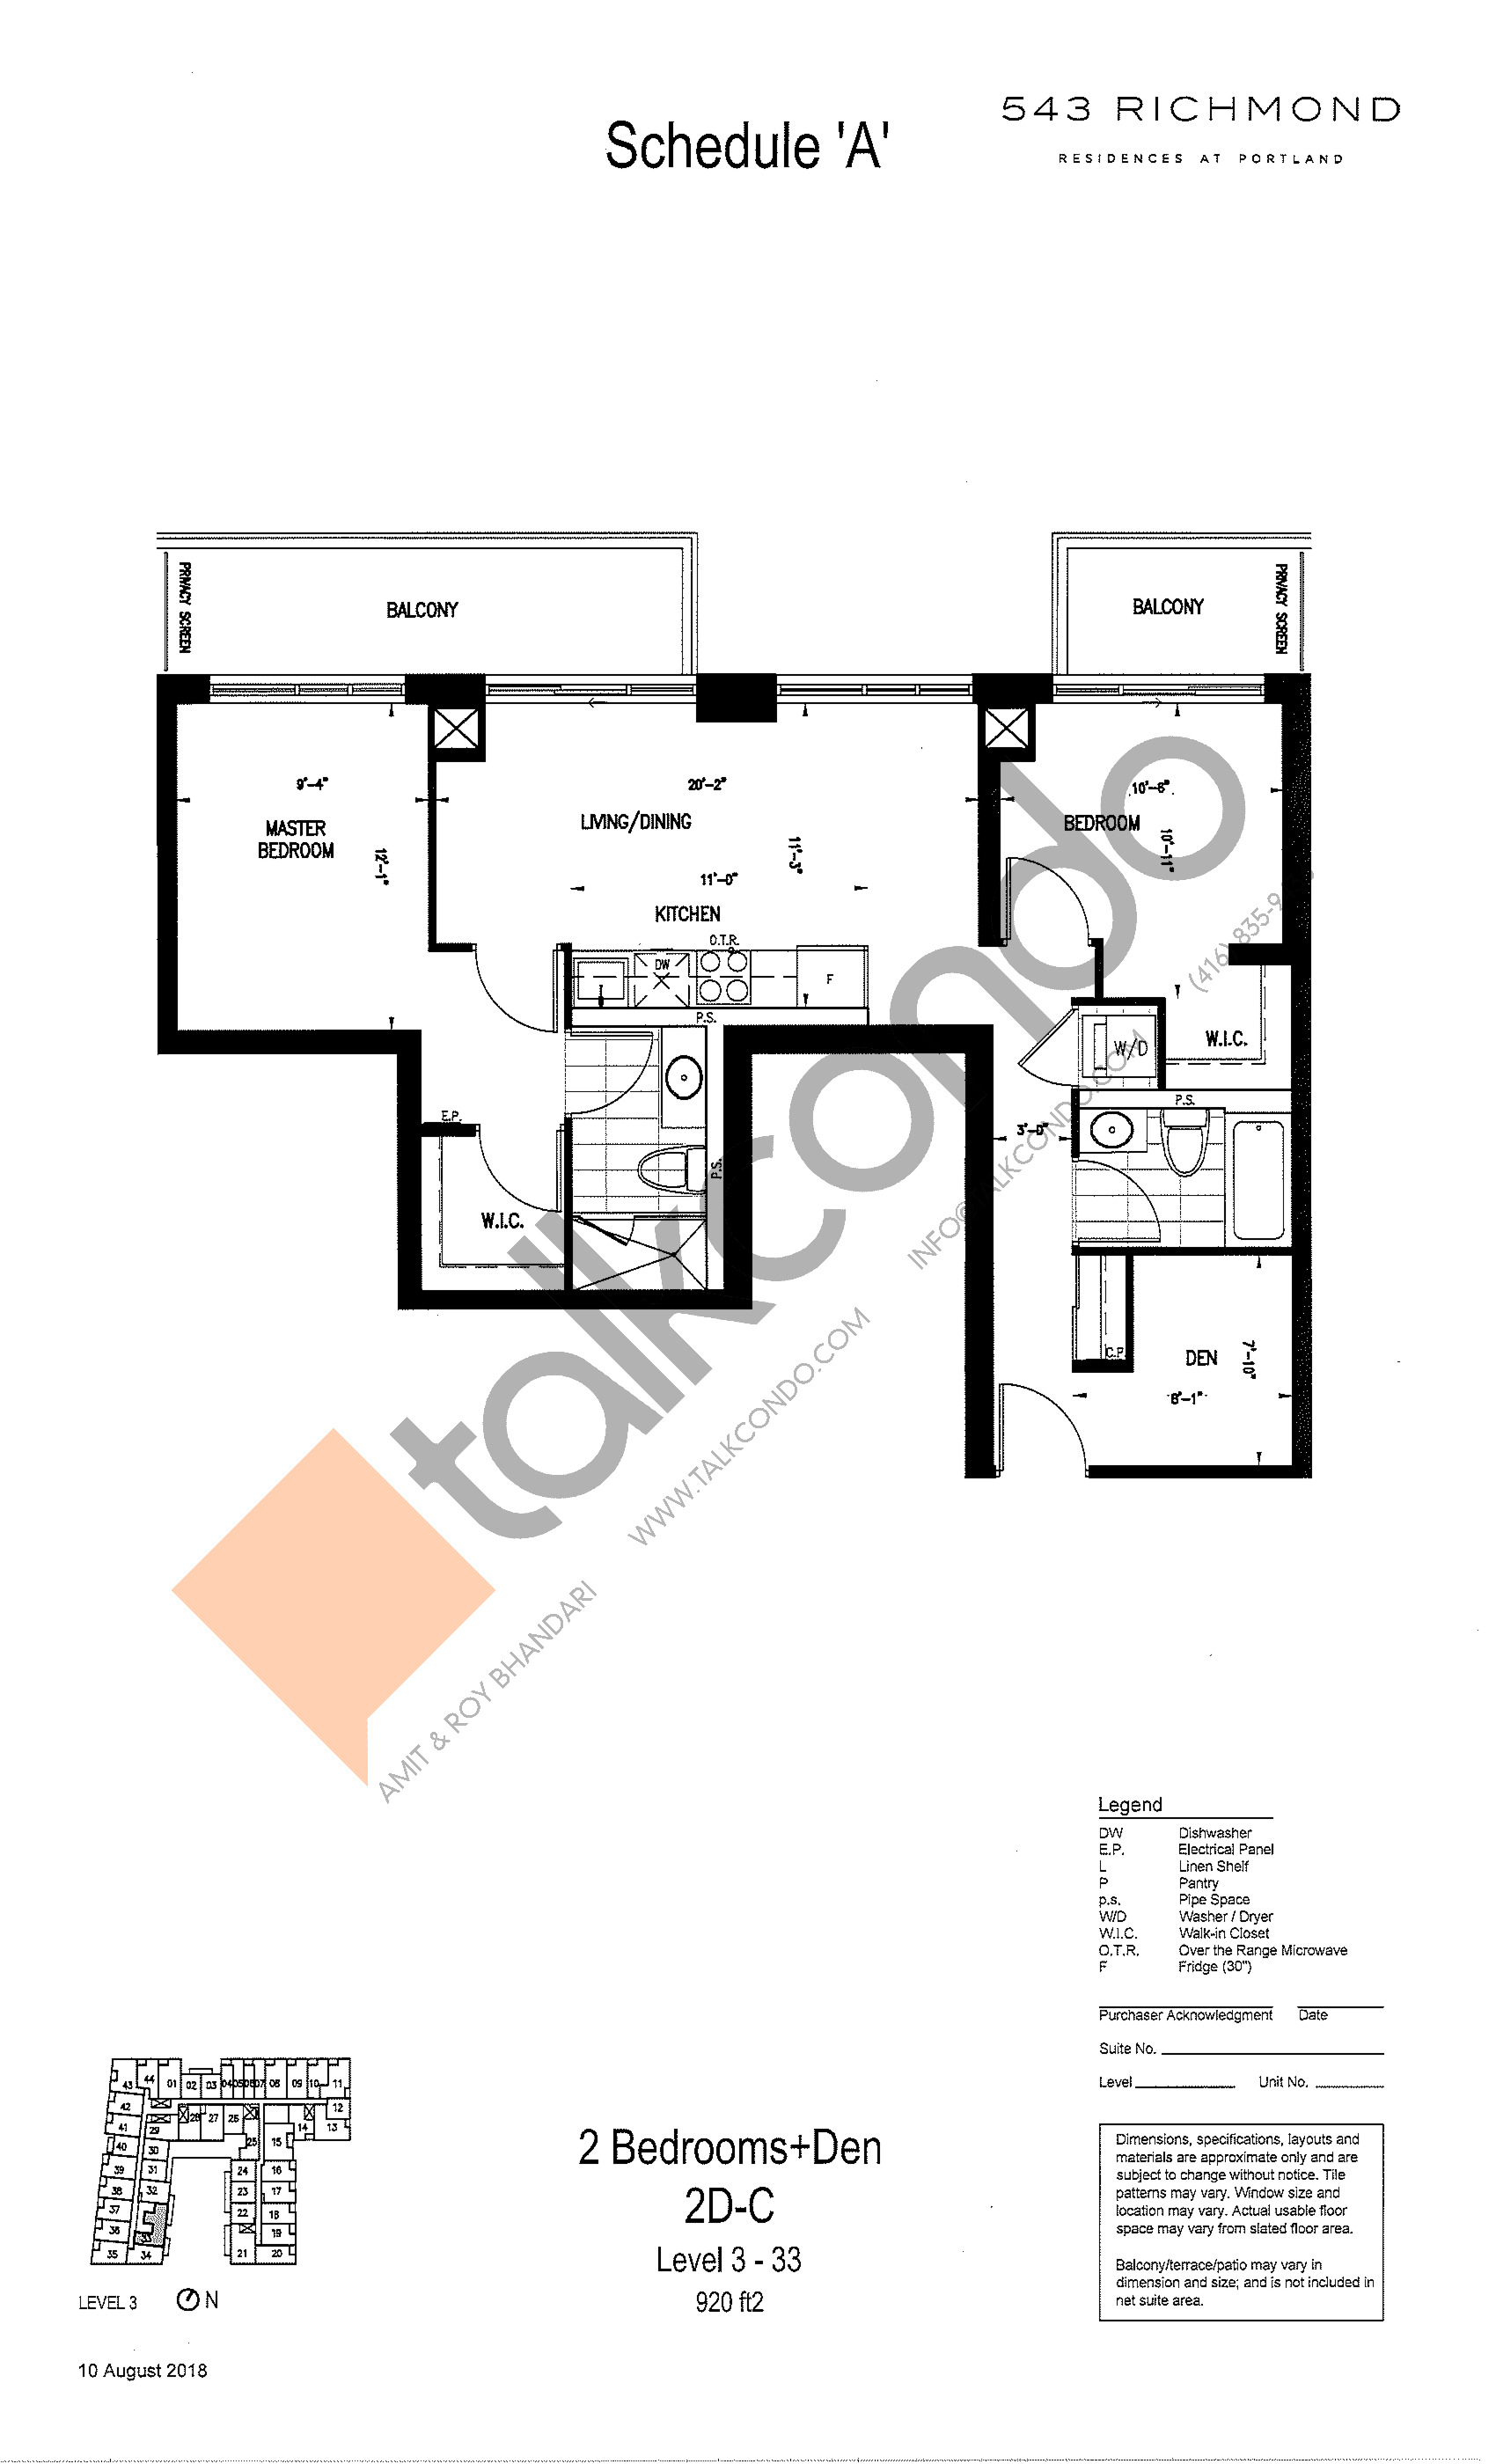 2D-C Floor Plan at 543 Richmond St Condos - 920 sq.ft